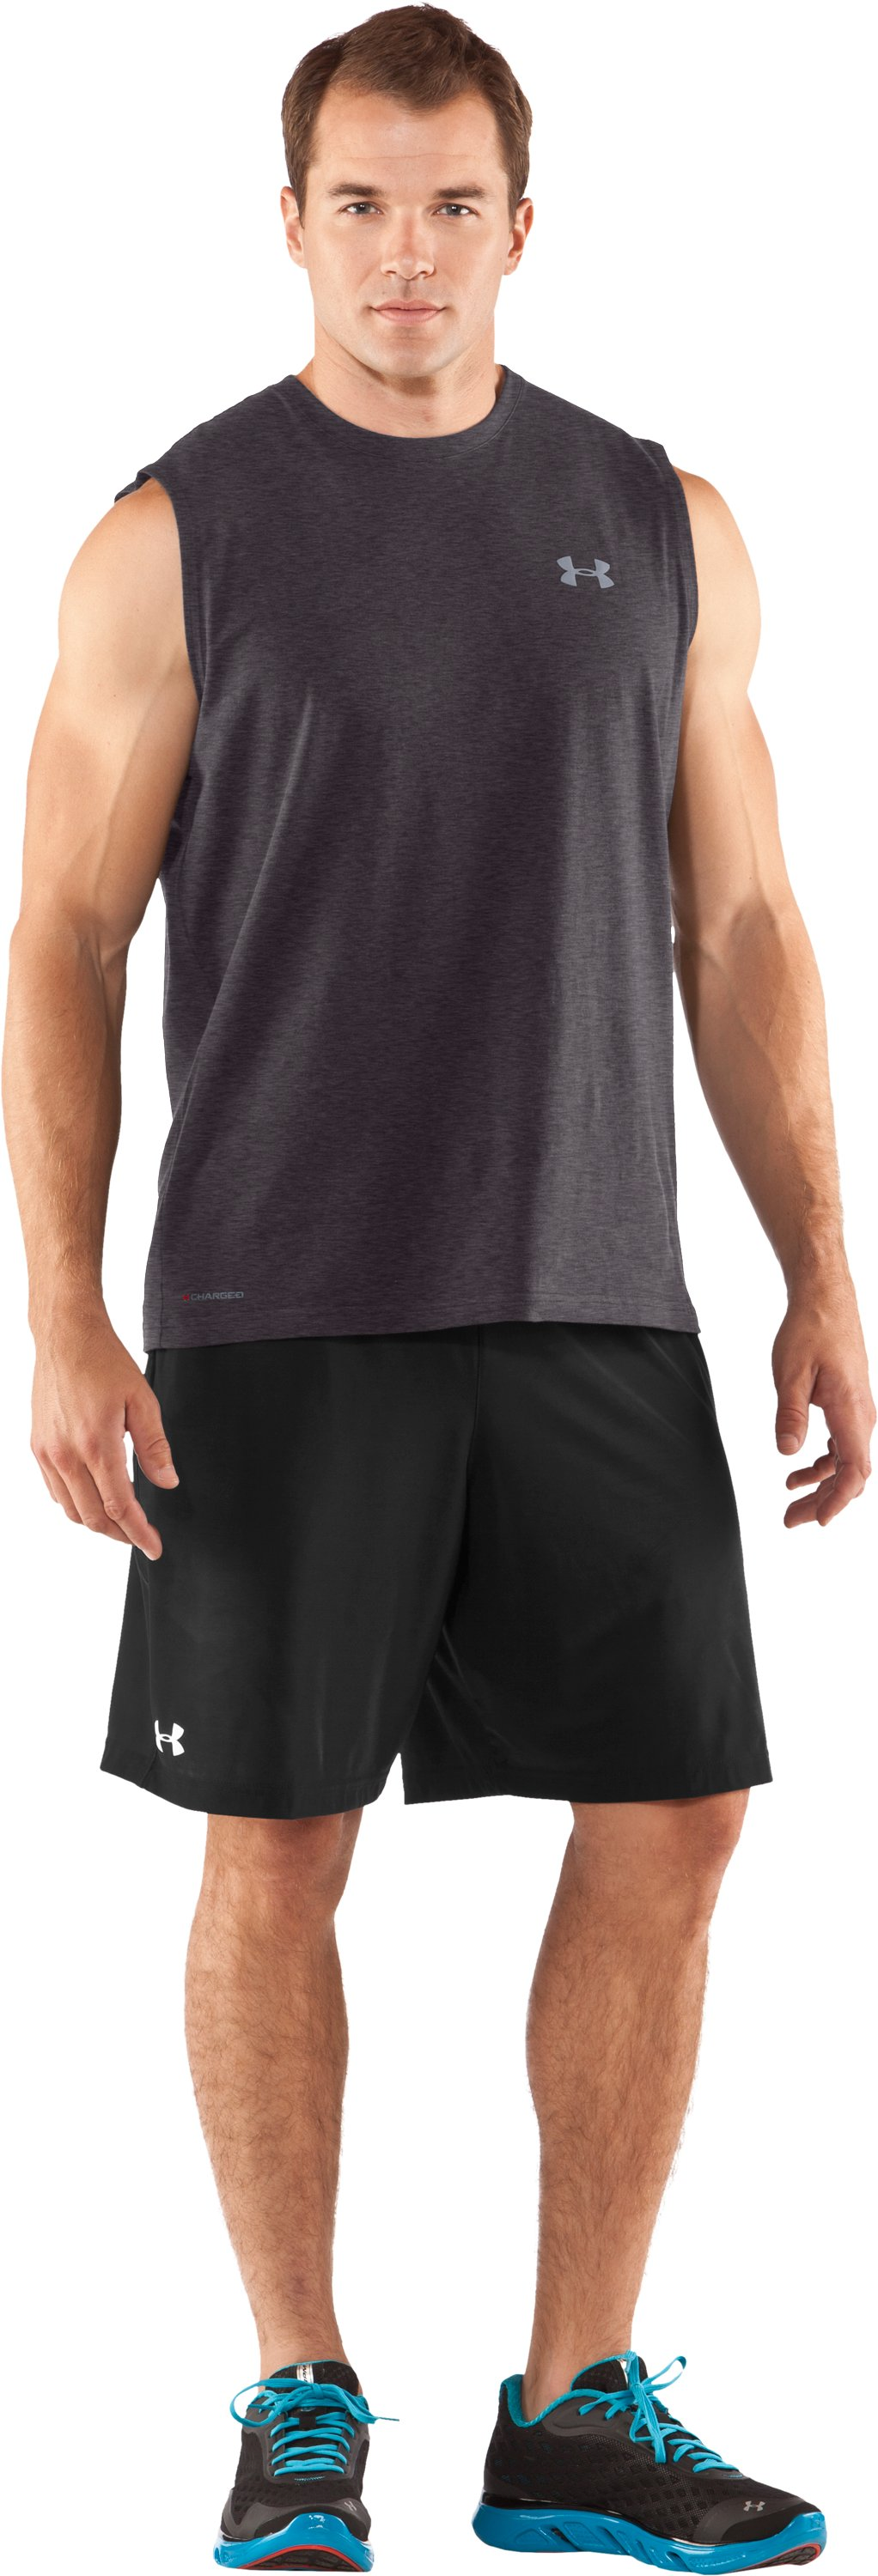 Men's Charged Cotton® Sleeveless T-shirt, Carbon Heather